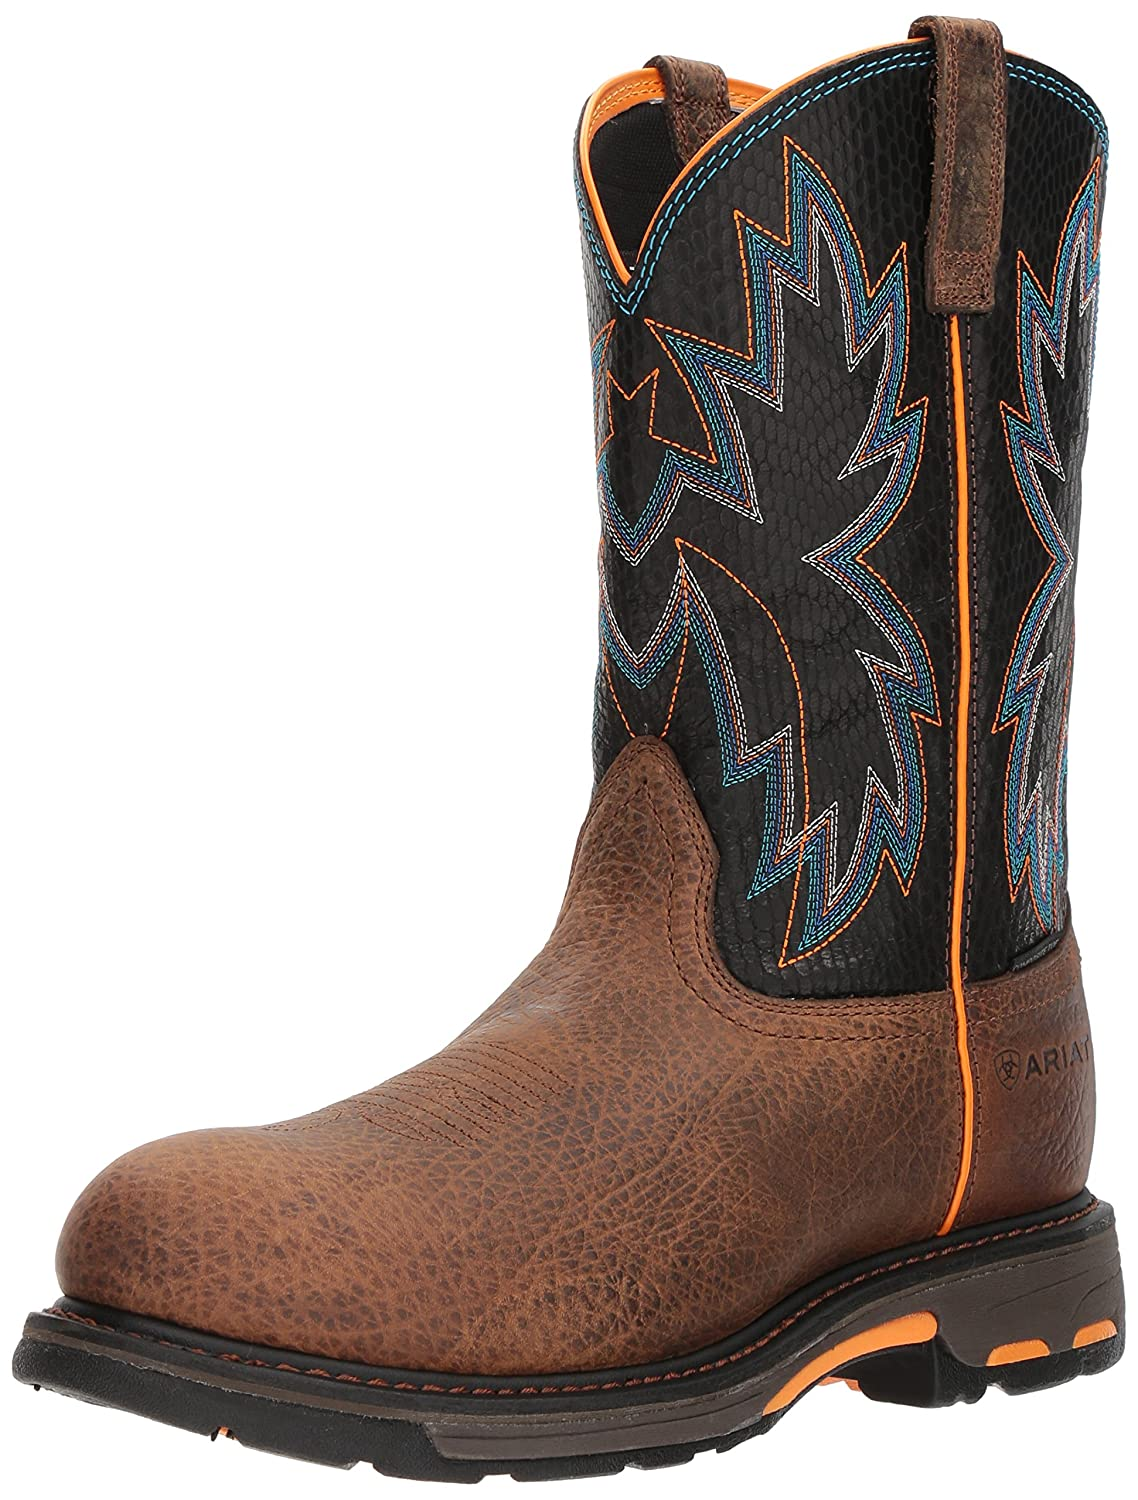 Ariat Work メンズ Workhog Raptor Composite Toe Earth/Black Snake Print 8.5 D(M) US 8.5 D(M) USEarth/Black Snake Print B076MCRBL9